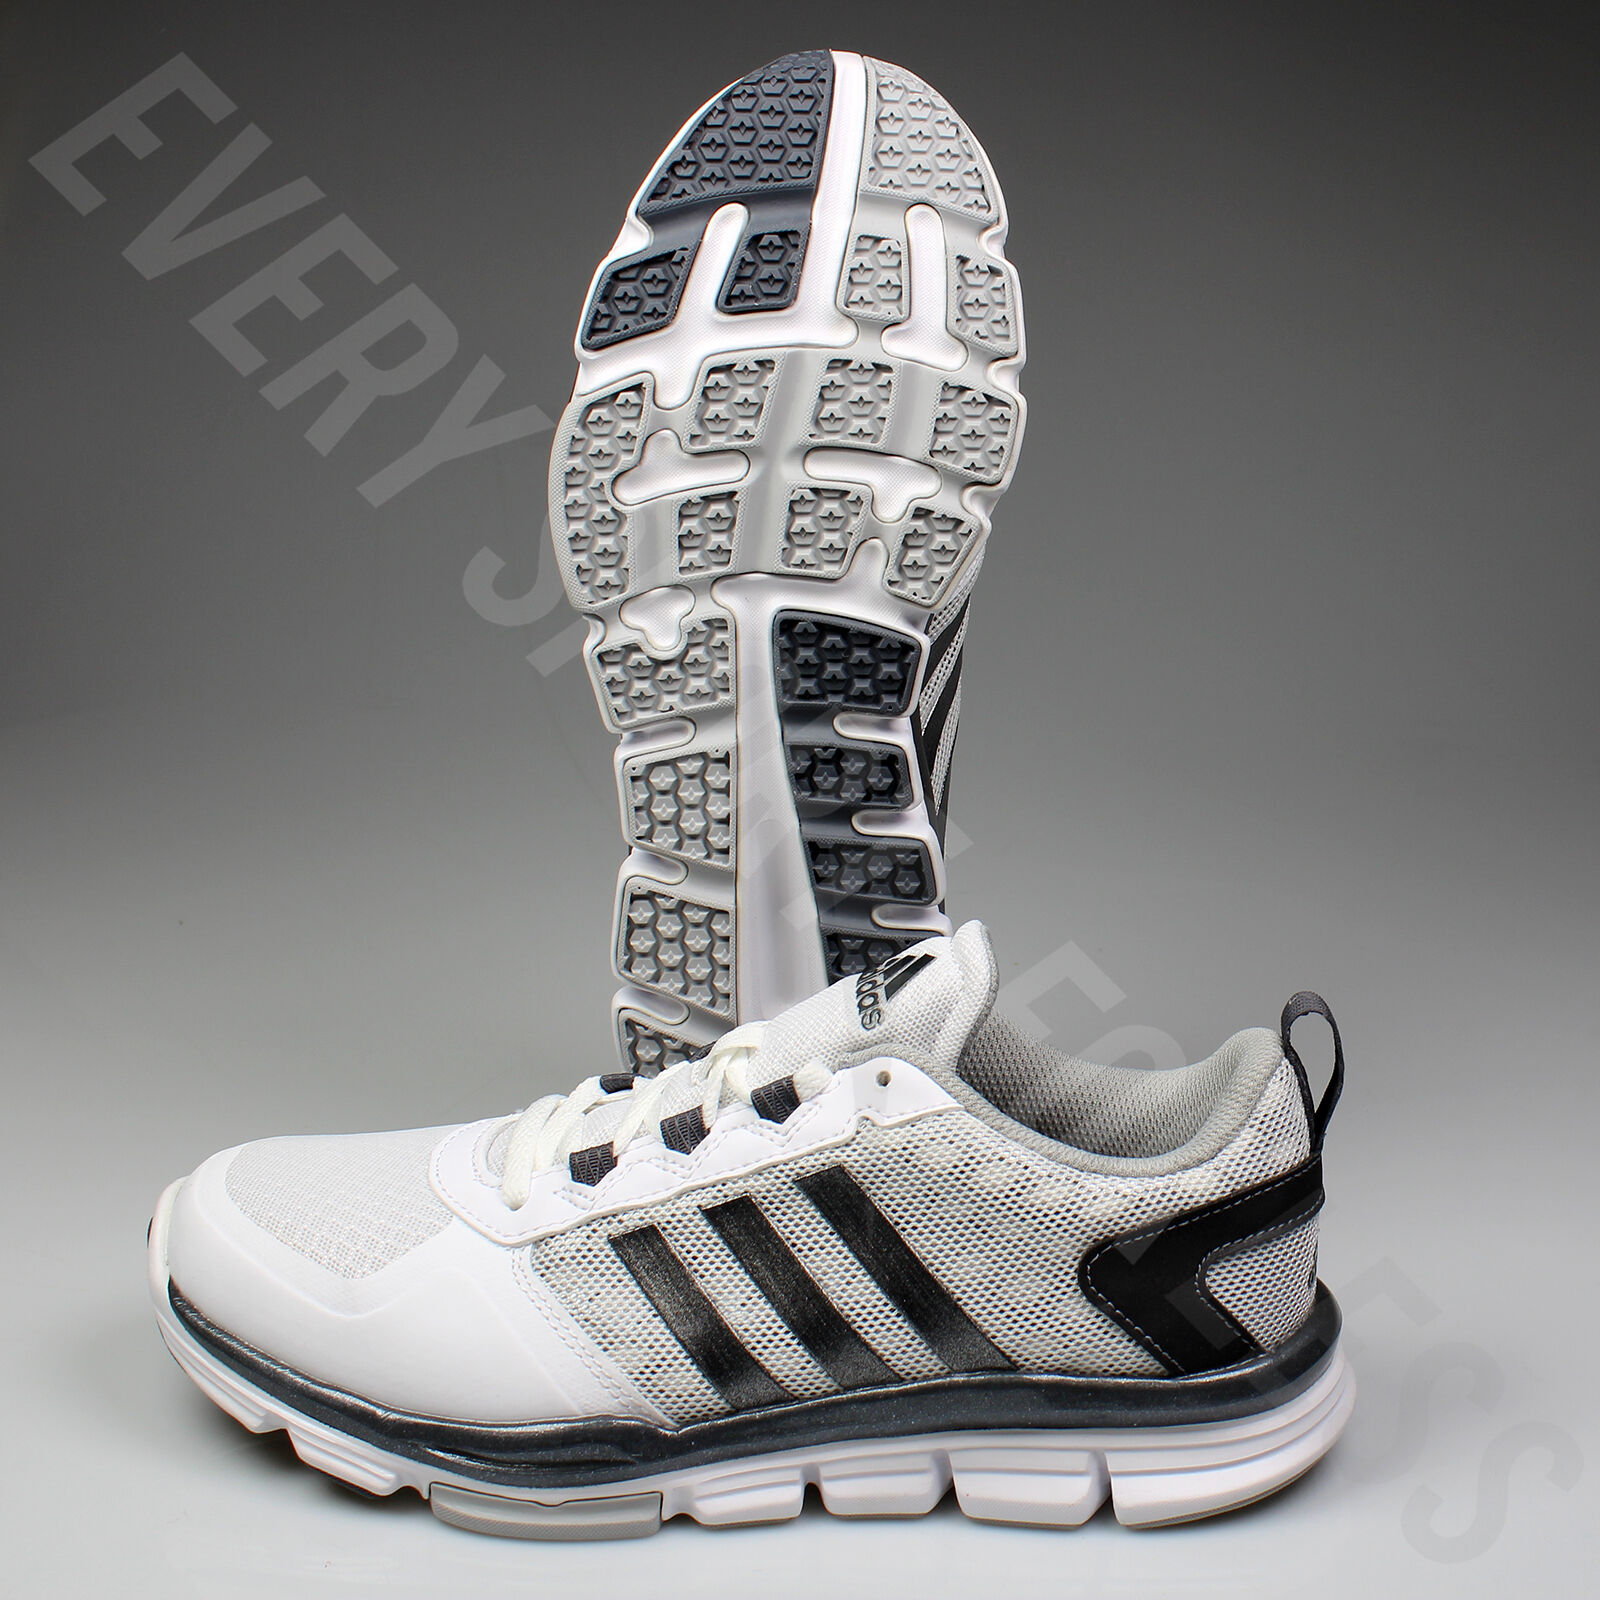 Adidas Speed Trainer 2.0 Shoe Wide Mens Baseball Trainer Shoe 2.0 B54355 (NEW) Lists@$80 a8c9c2